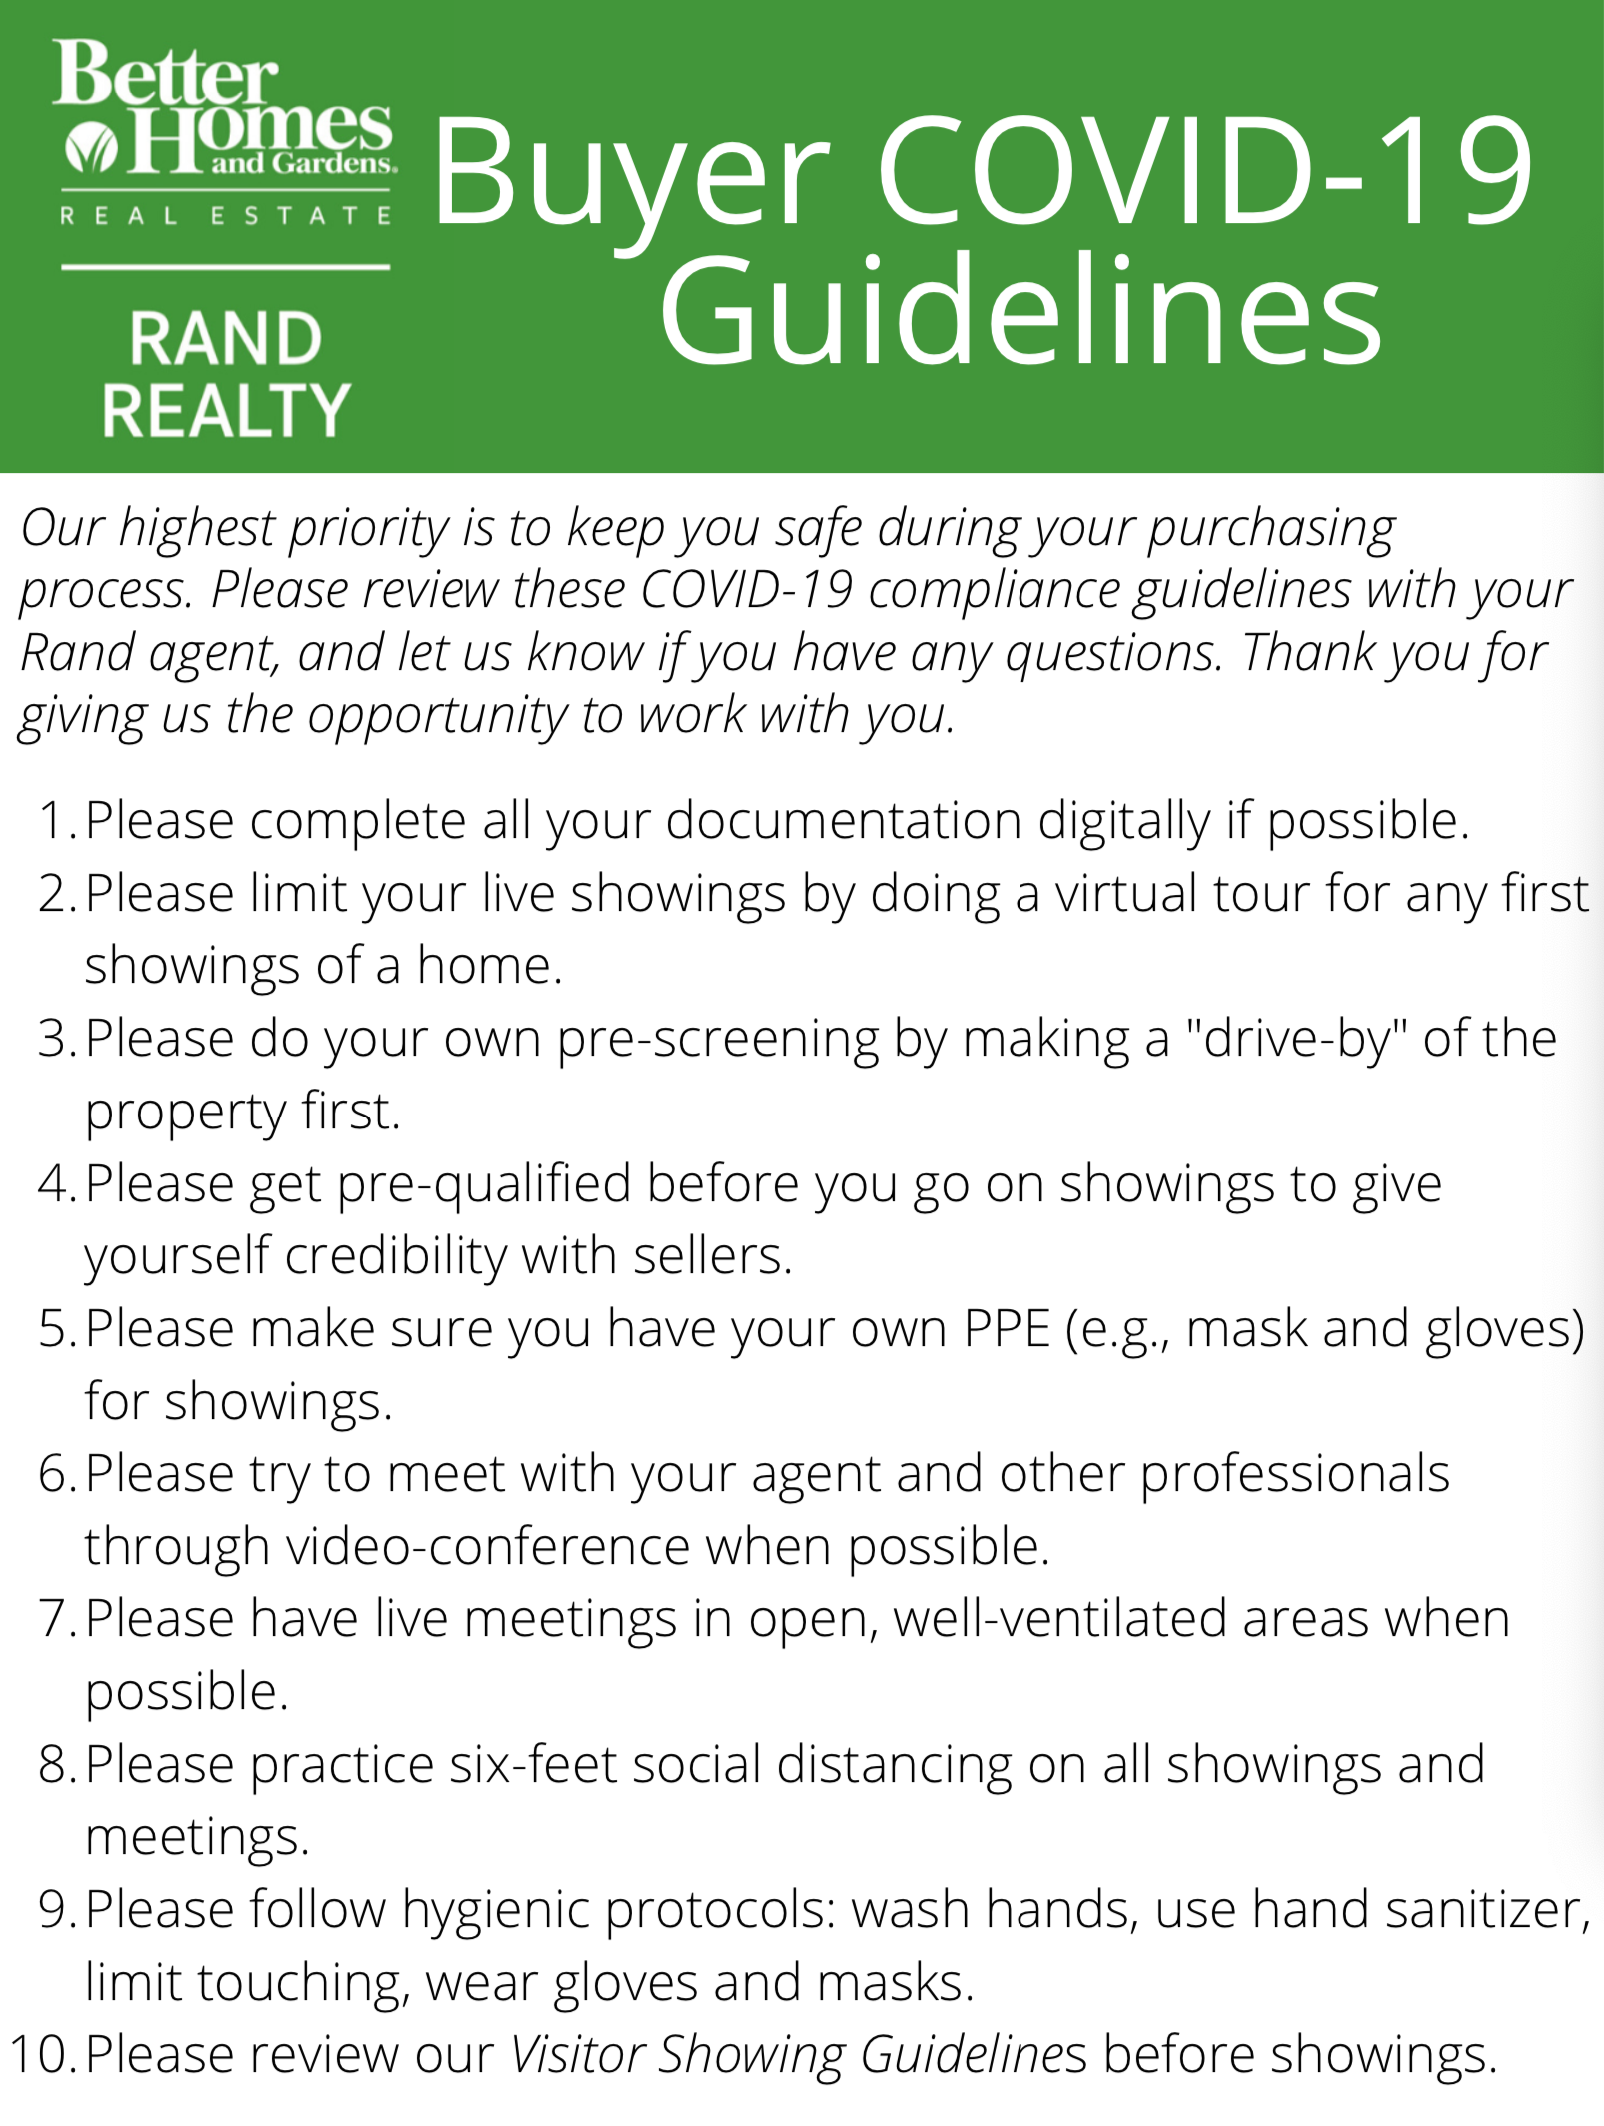 BHG Rand Buyer Guidelines